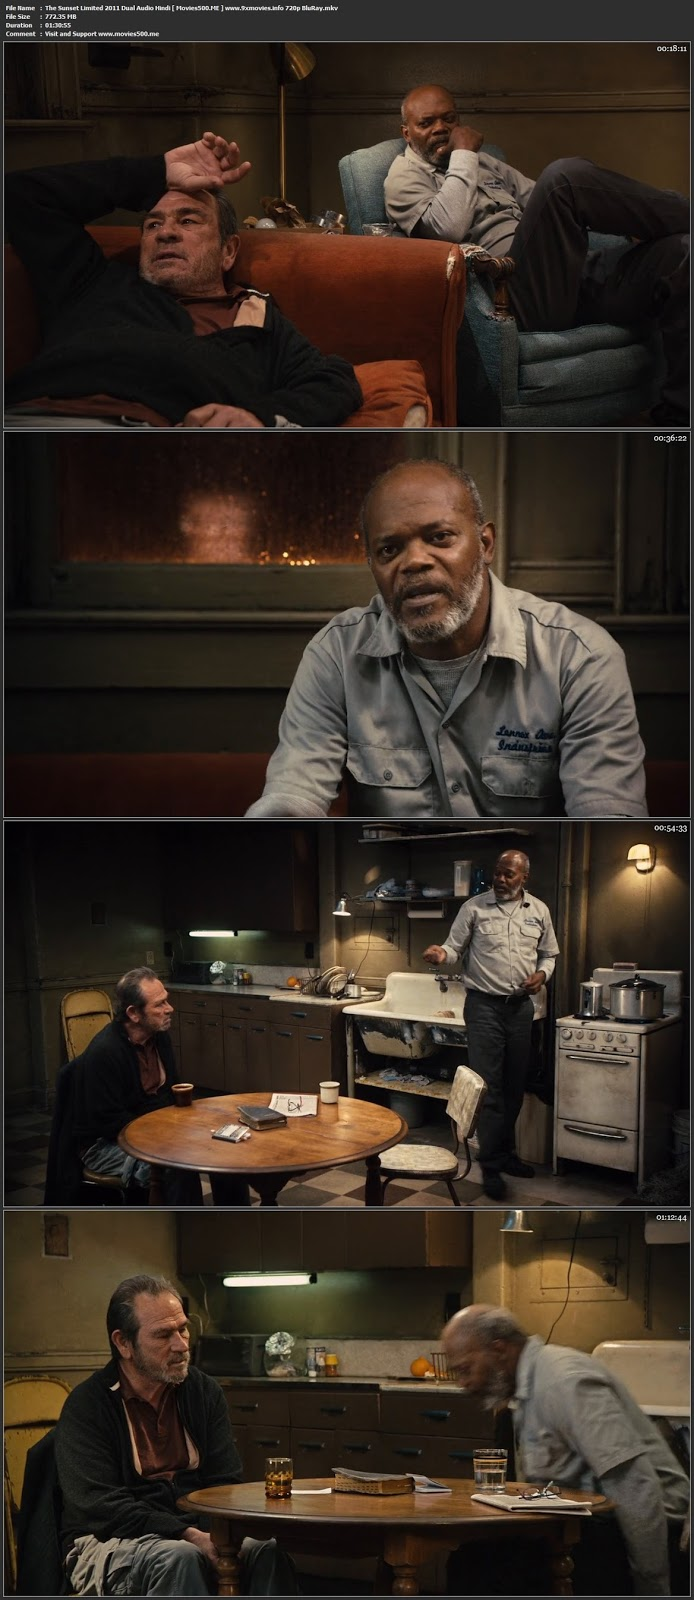 The Sunset Limited 2011 Dual Audio Hindi 720p BluRay at tokenguy.com